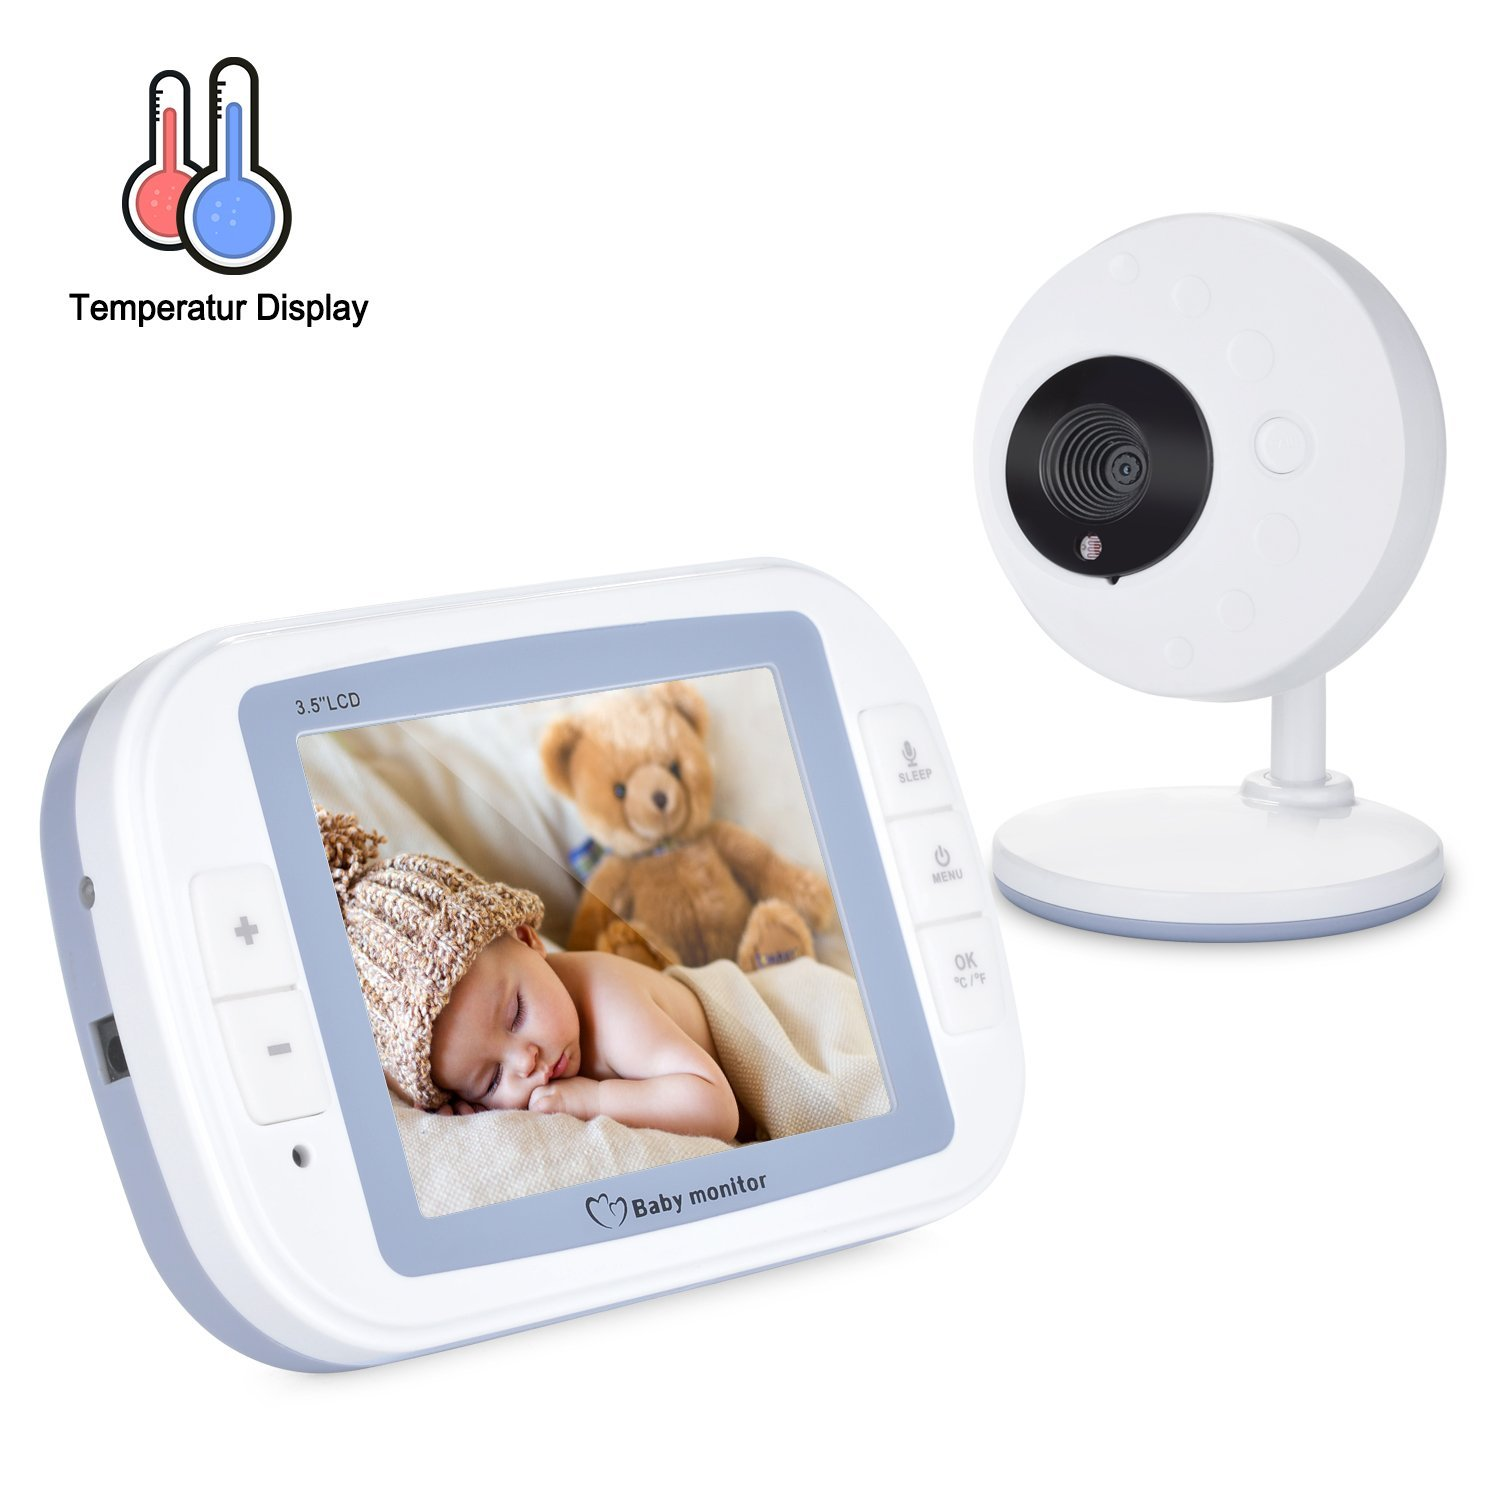 Fitnate 3.5Inch Video Baby Monitor with LCD Display, Digital Camera, Infrared Night Vision, Two Way Talk Back, Temperature Monitoring, Lullabies, Long Range and High Capacity Battery, Large Screen